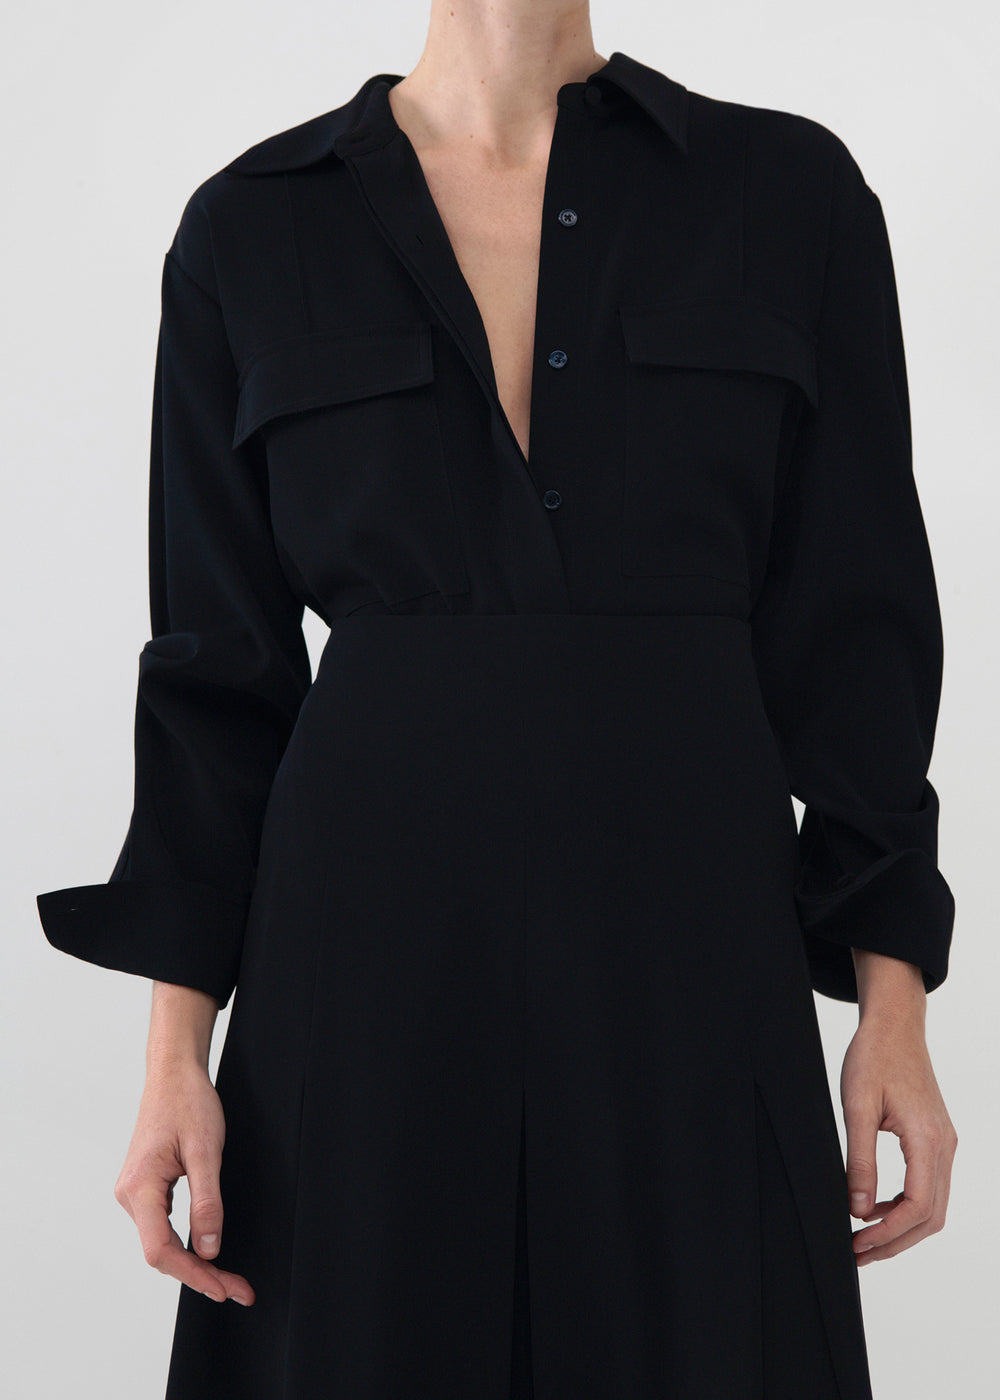 Utility Shirt in Stretch Crepe - Ivory in Black by Co Collections